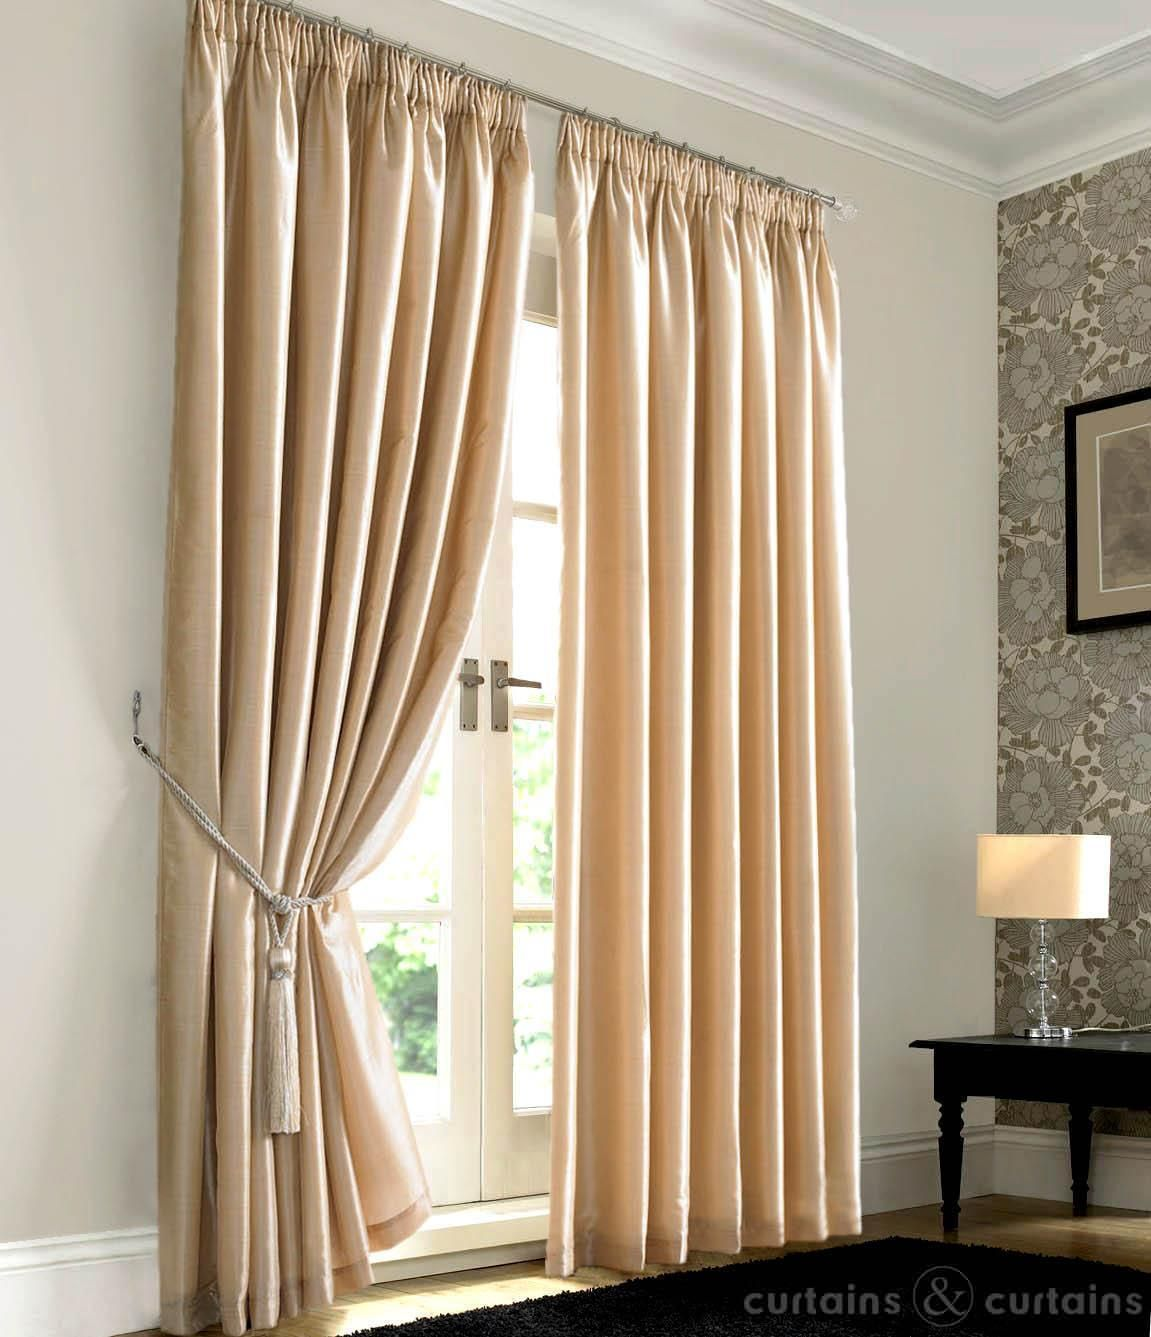 Cream Bedroom Curtains Cream Bedroom Curtains Curtain Designs For Bedroom Curtains